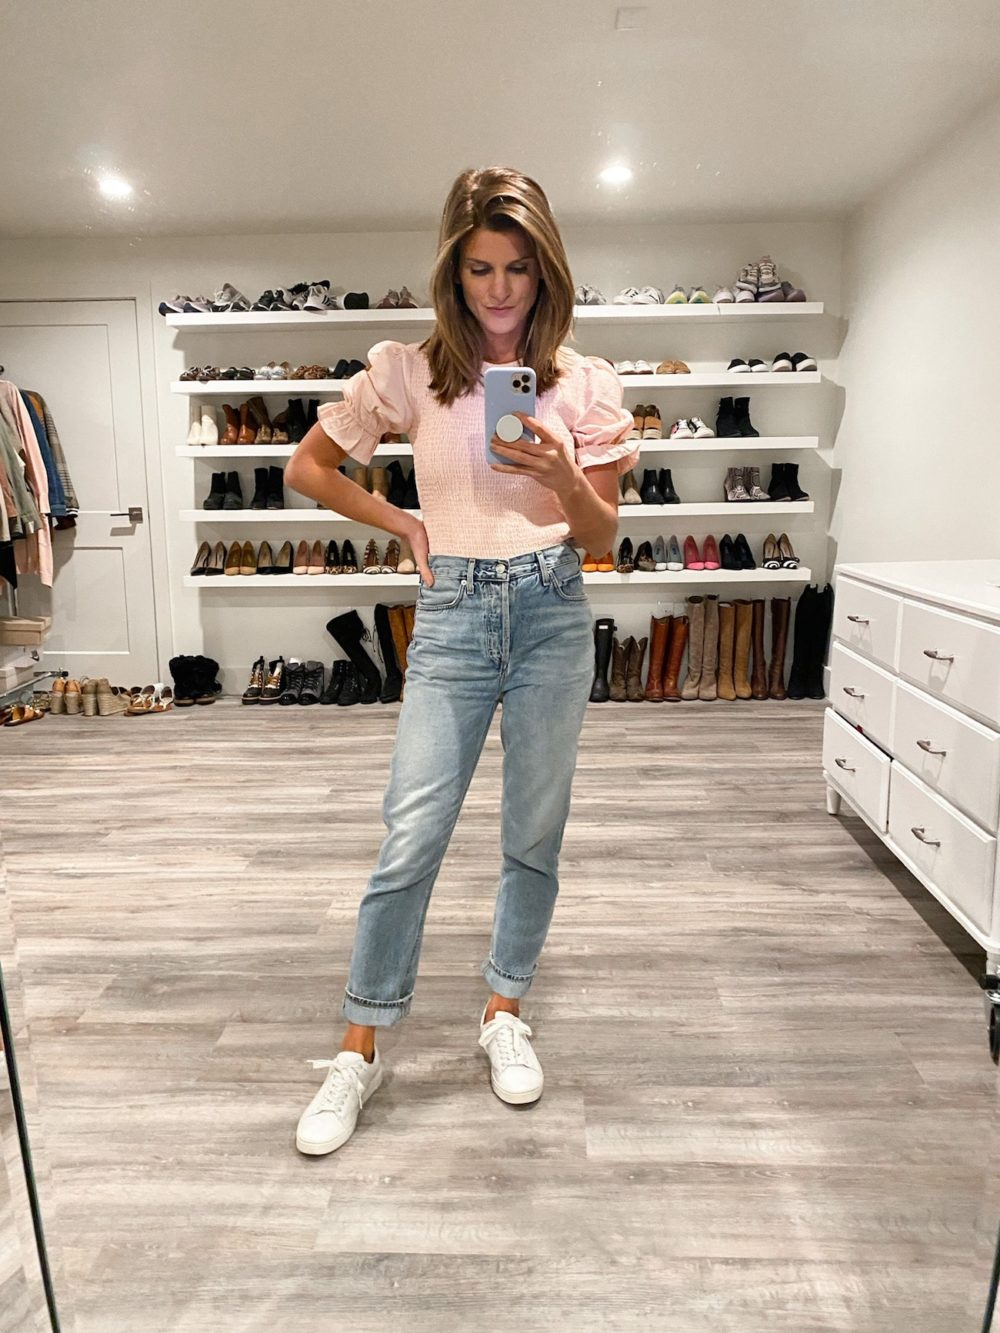 Brighton Keller wearing pink top, mom jeans and white sneakers